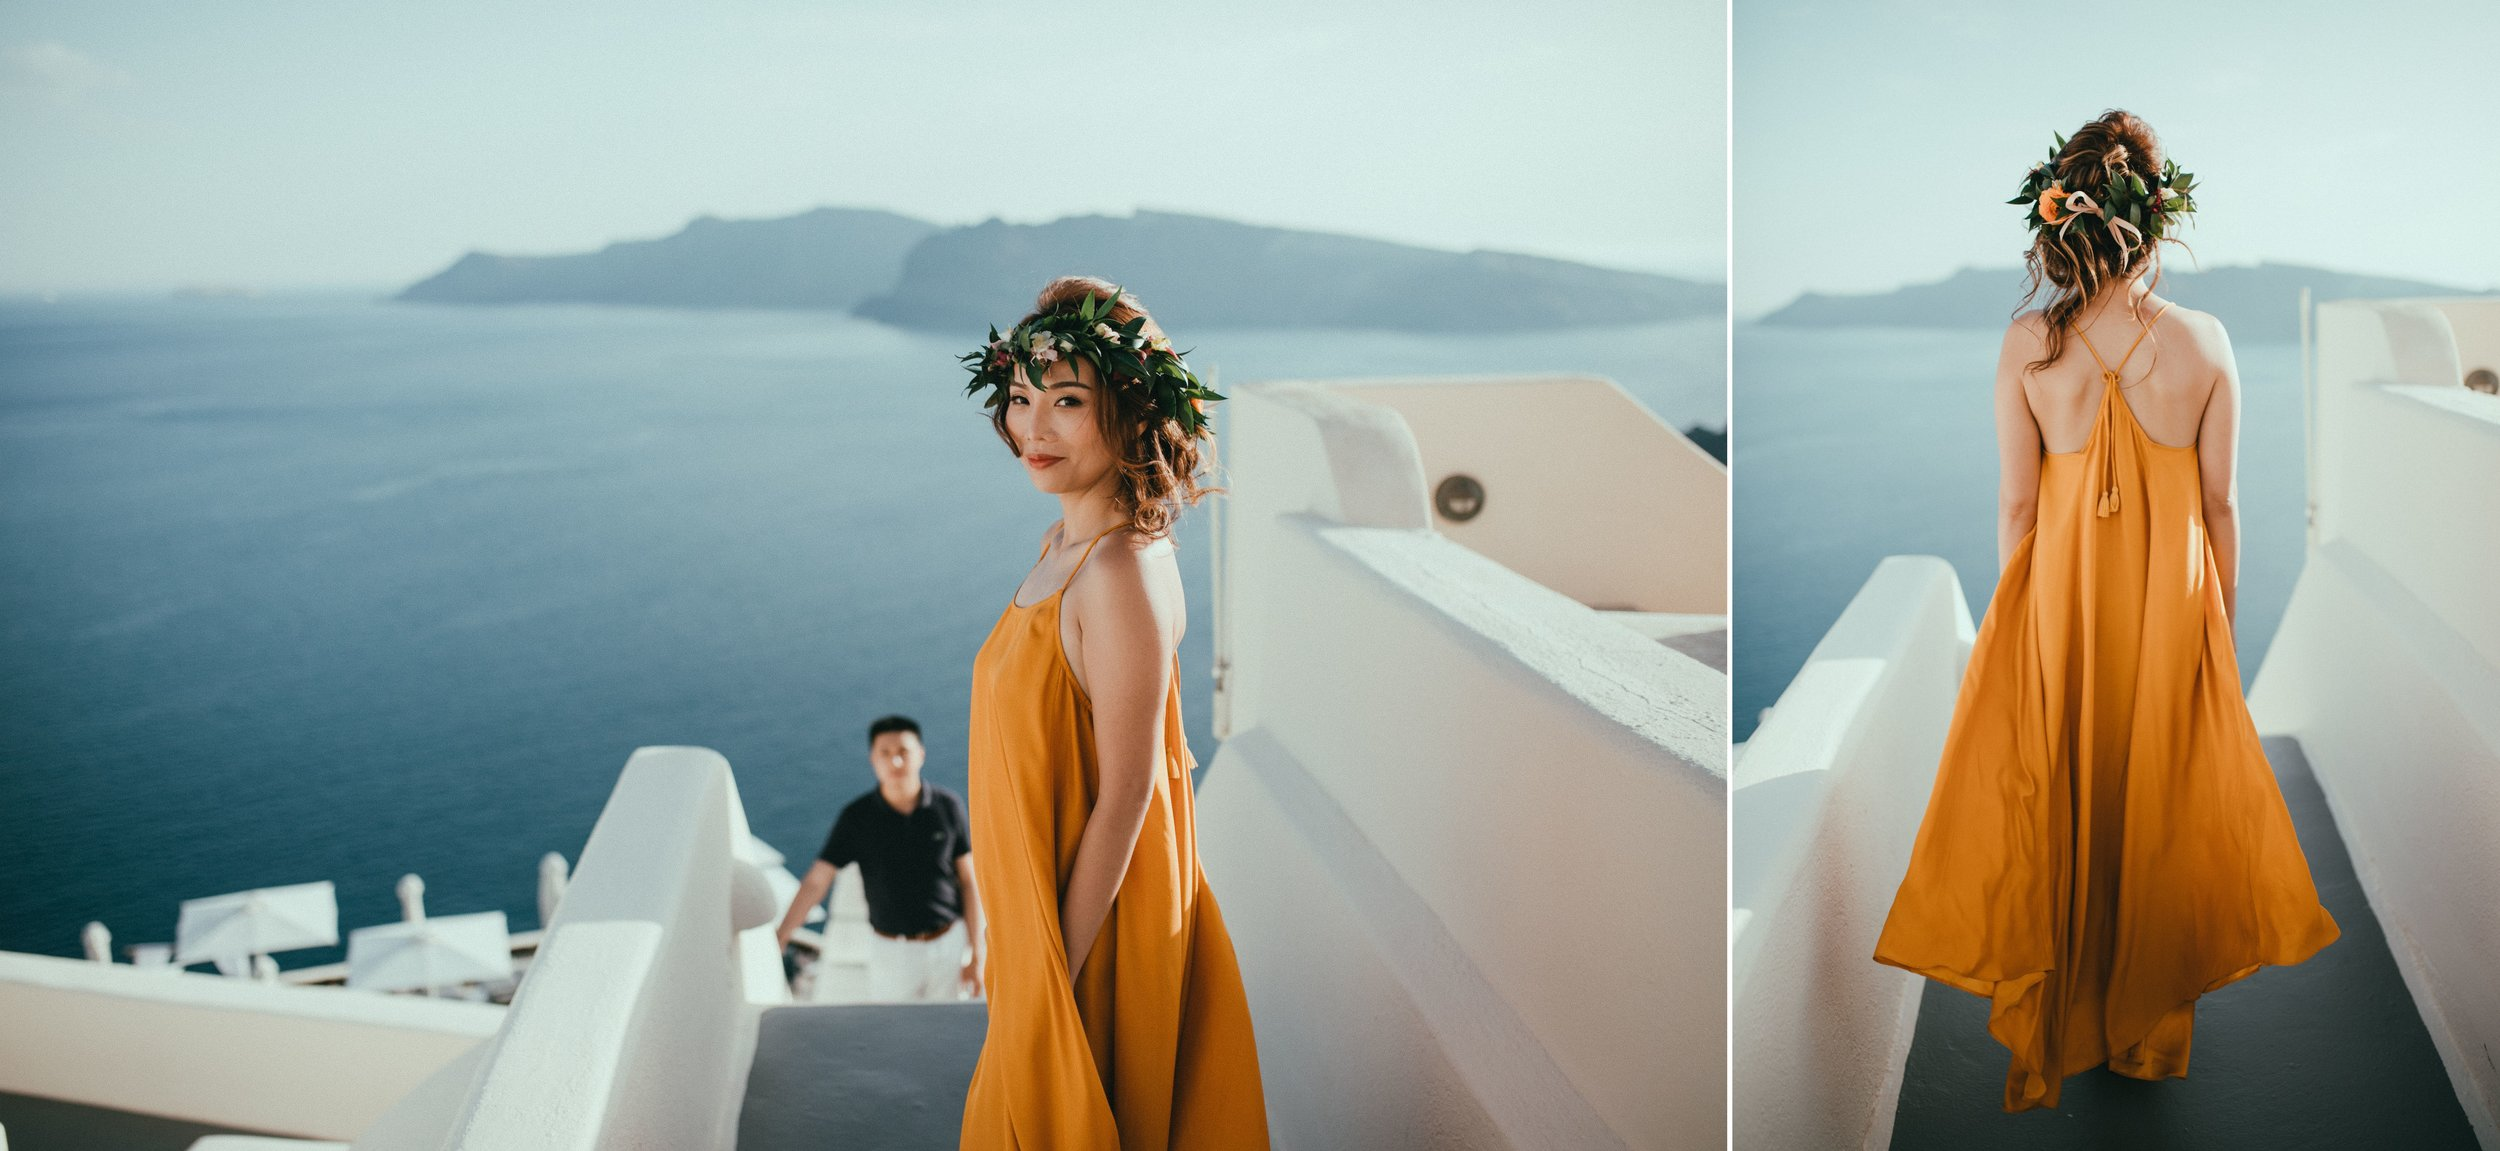 canaves-oia-wedding-santorini(16).jpg